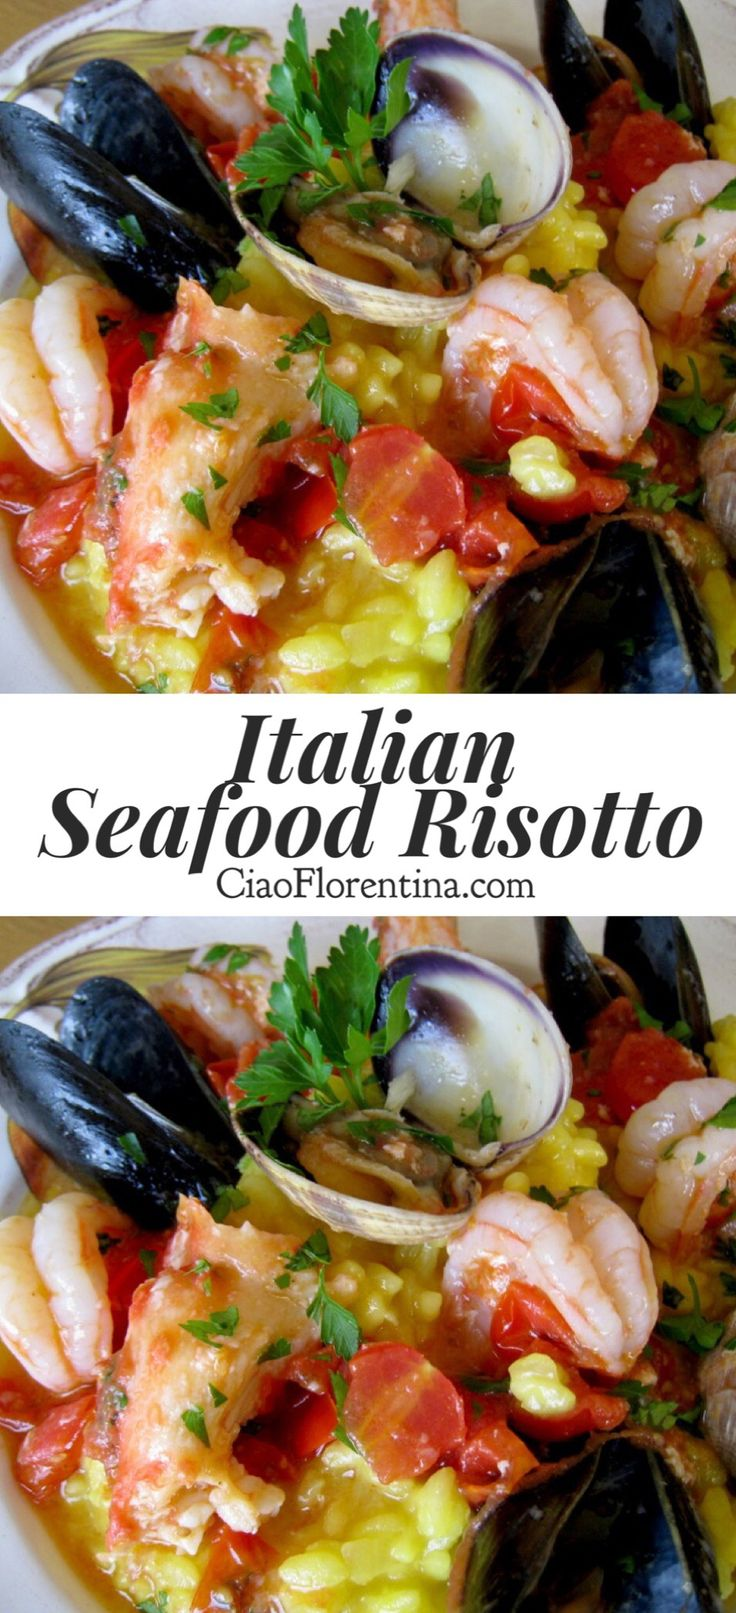 Seafood Risotto Frutti si Mare Recipe with Saffron, Shrimp, Clams and Mussels | CiaoFlorentina.com @CiaoFlorentina